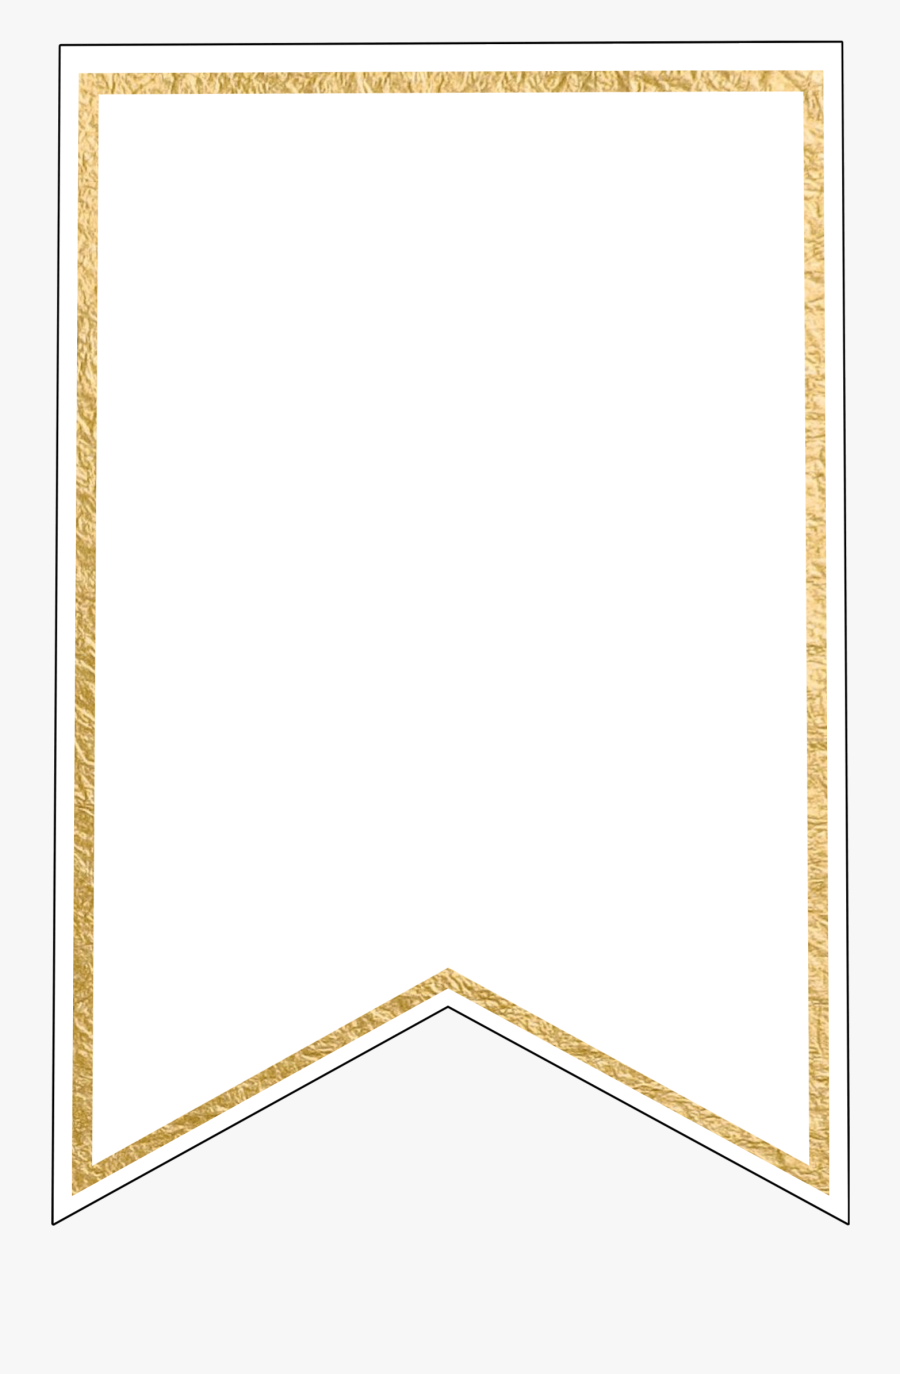 Free Pennant Banner Template, Download Free Clip Art, - Transparent Background Banner Blank Template, Transparent Clipart